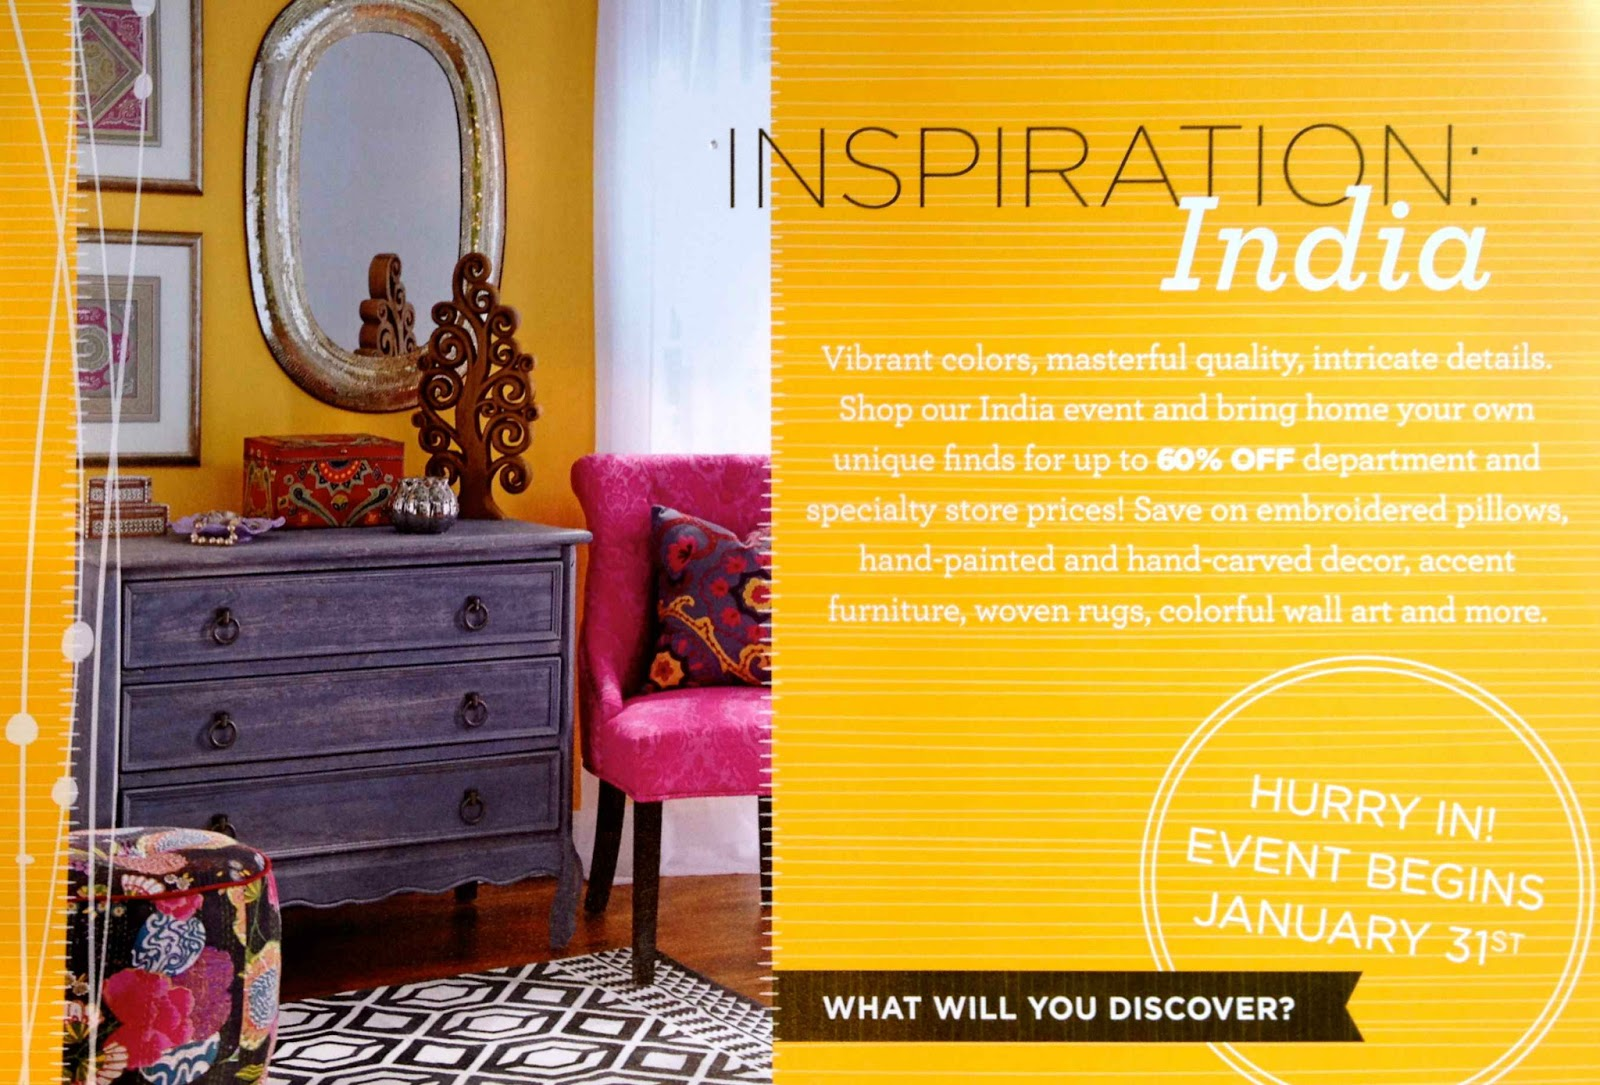 Last week I got a flyer from HomeGoods about their India event that